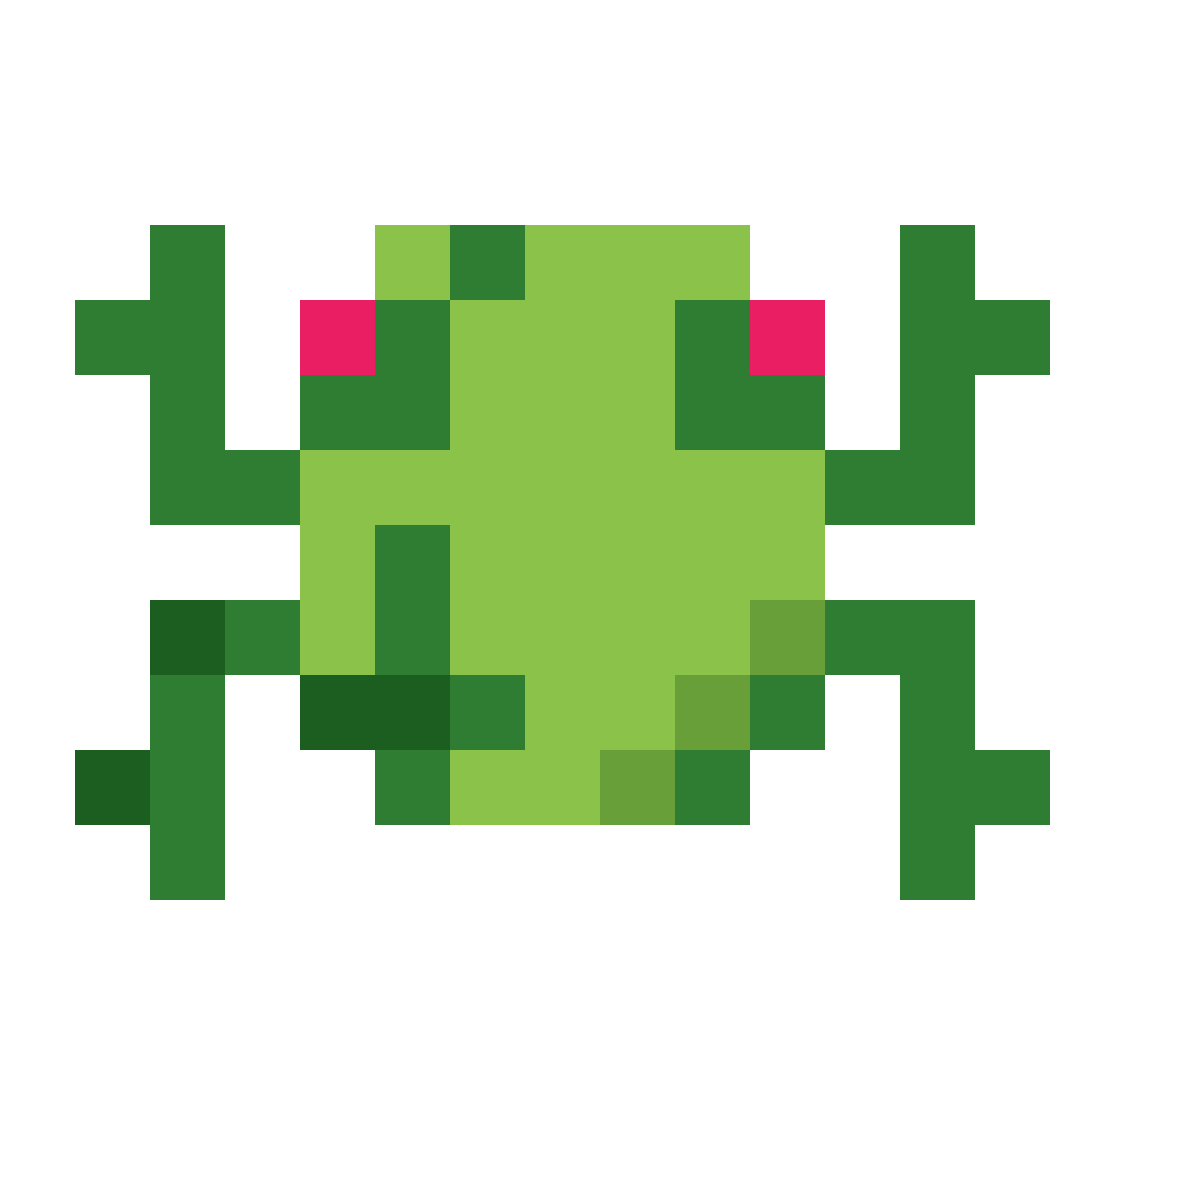 Frogger by TuekEleven